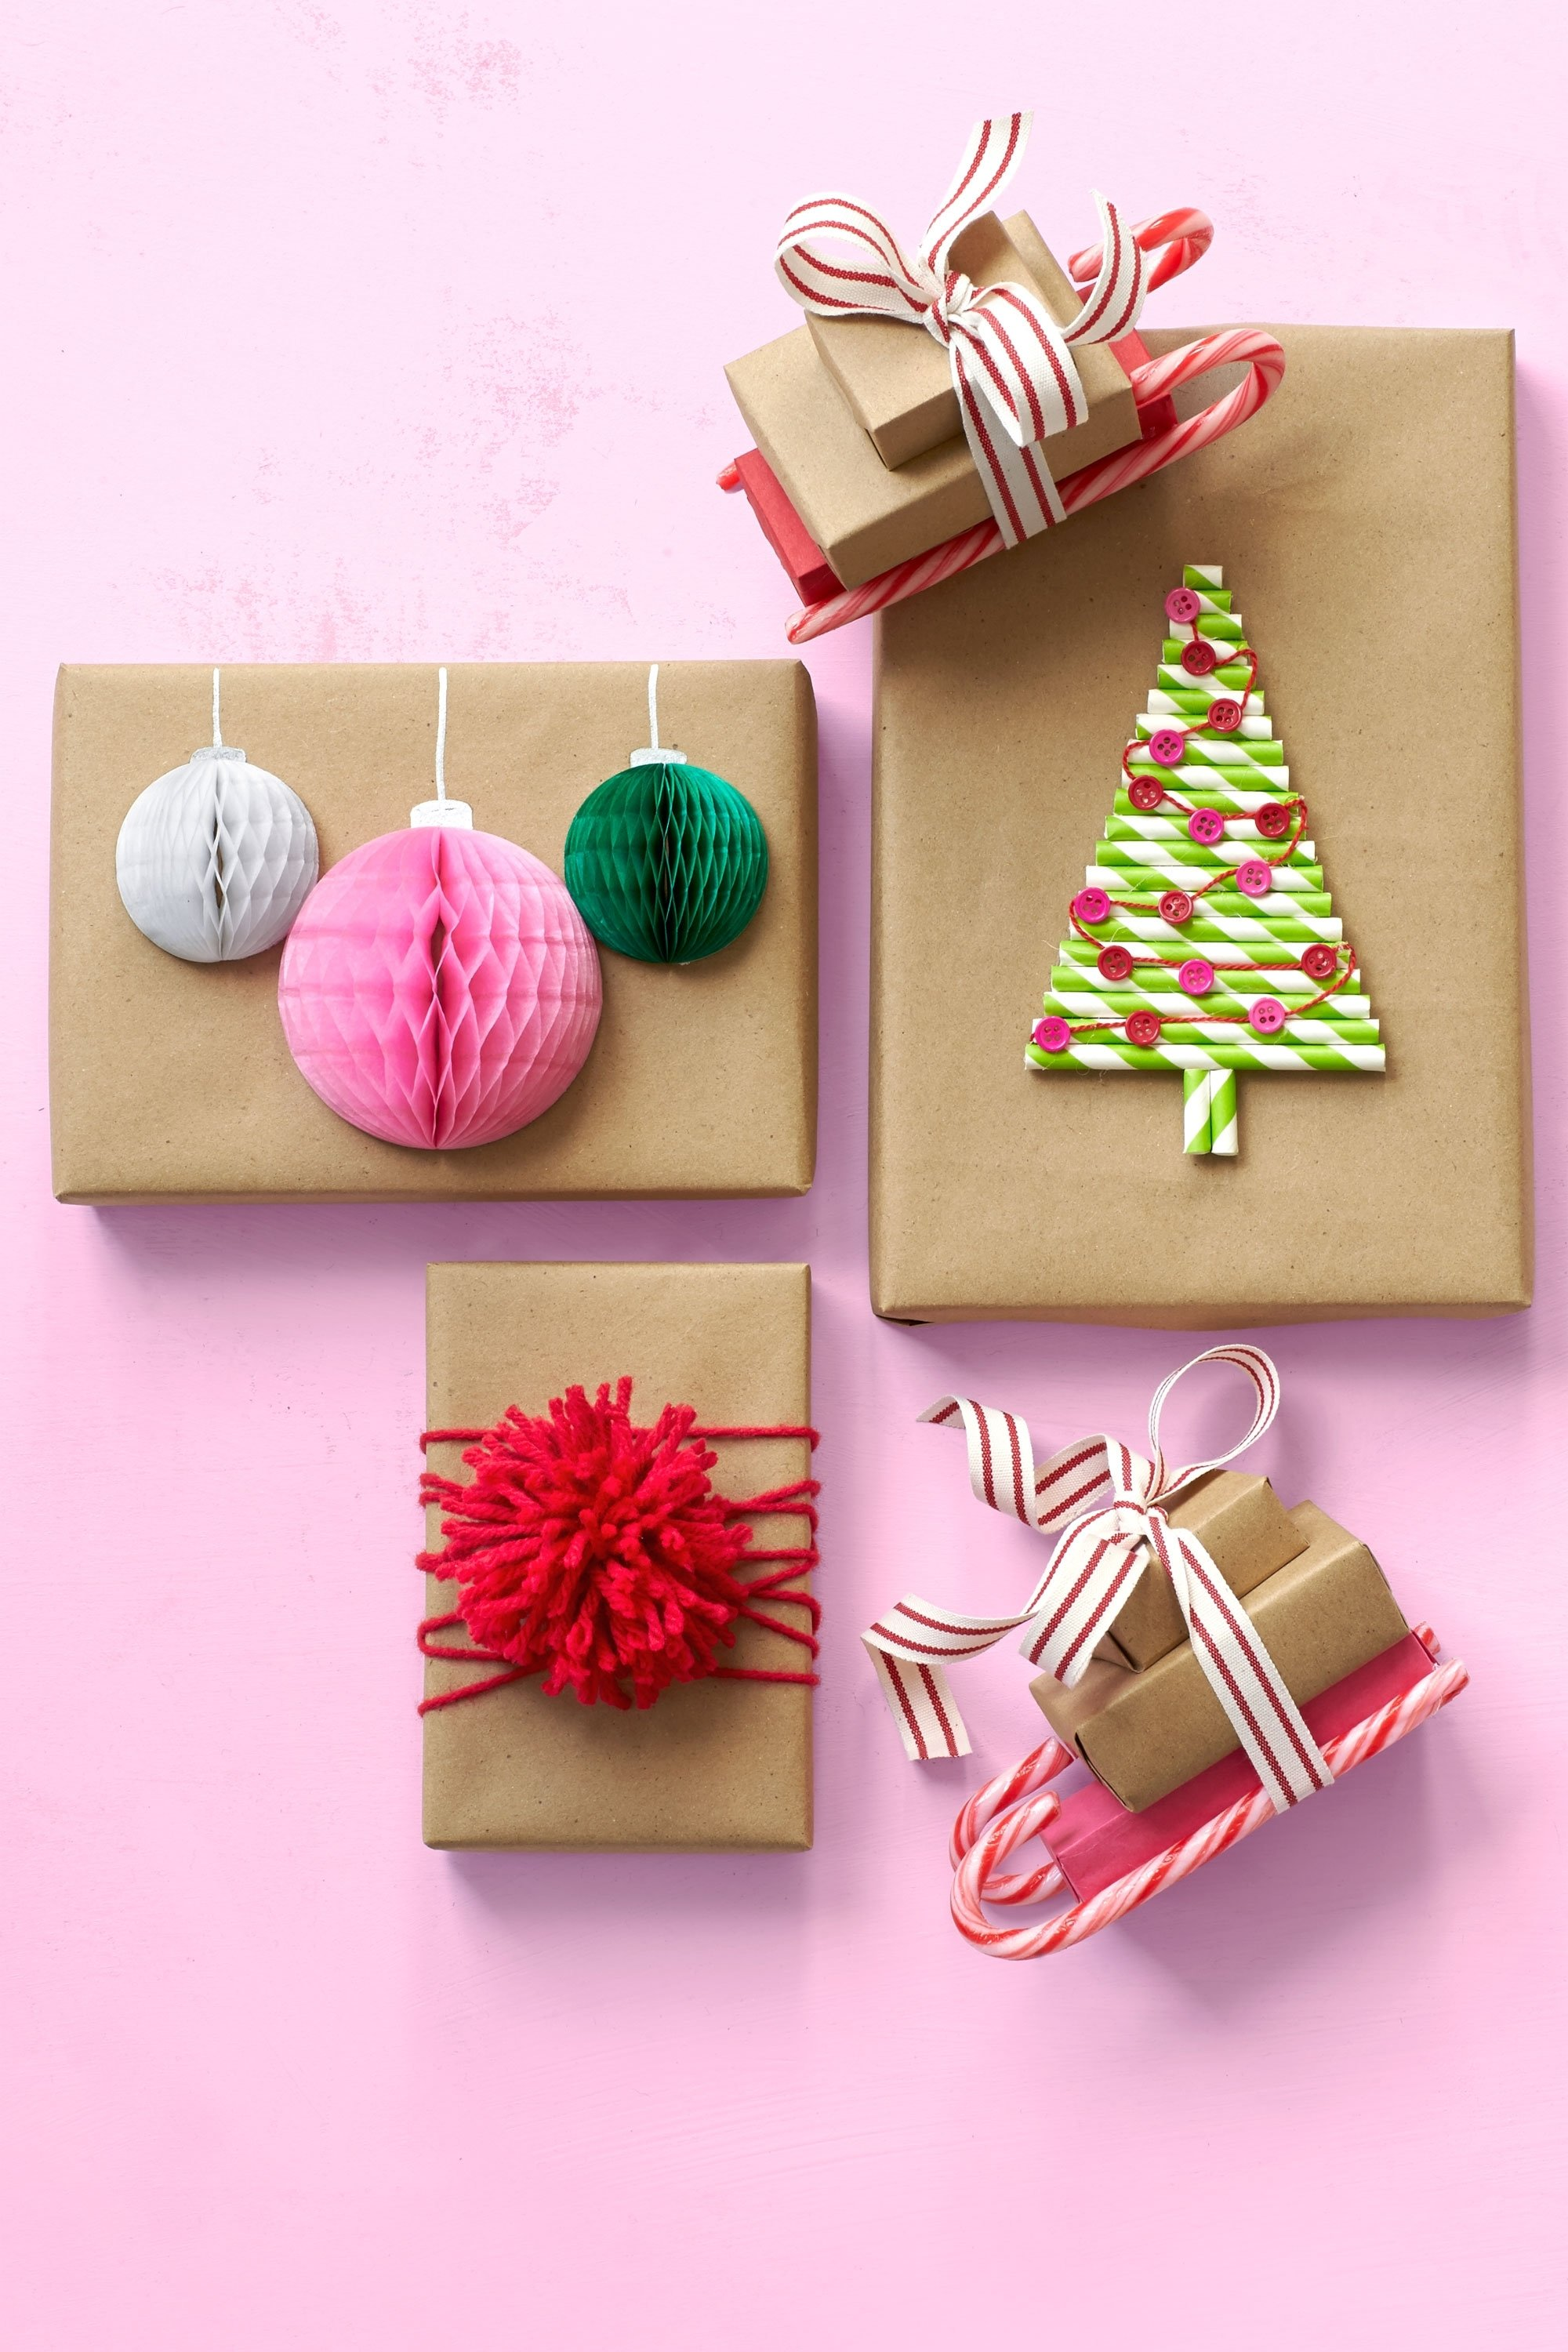 10 Best Home Made Christmas Gift Ideas crafty christmas betches part 1 trade and charm 2020